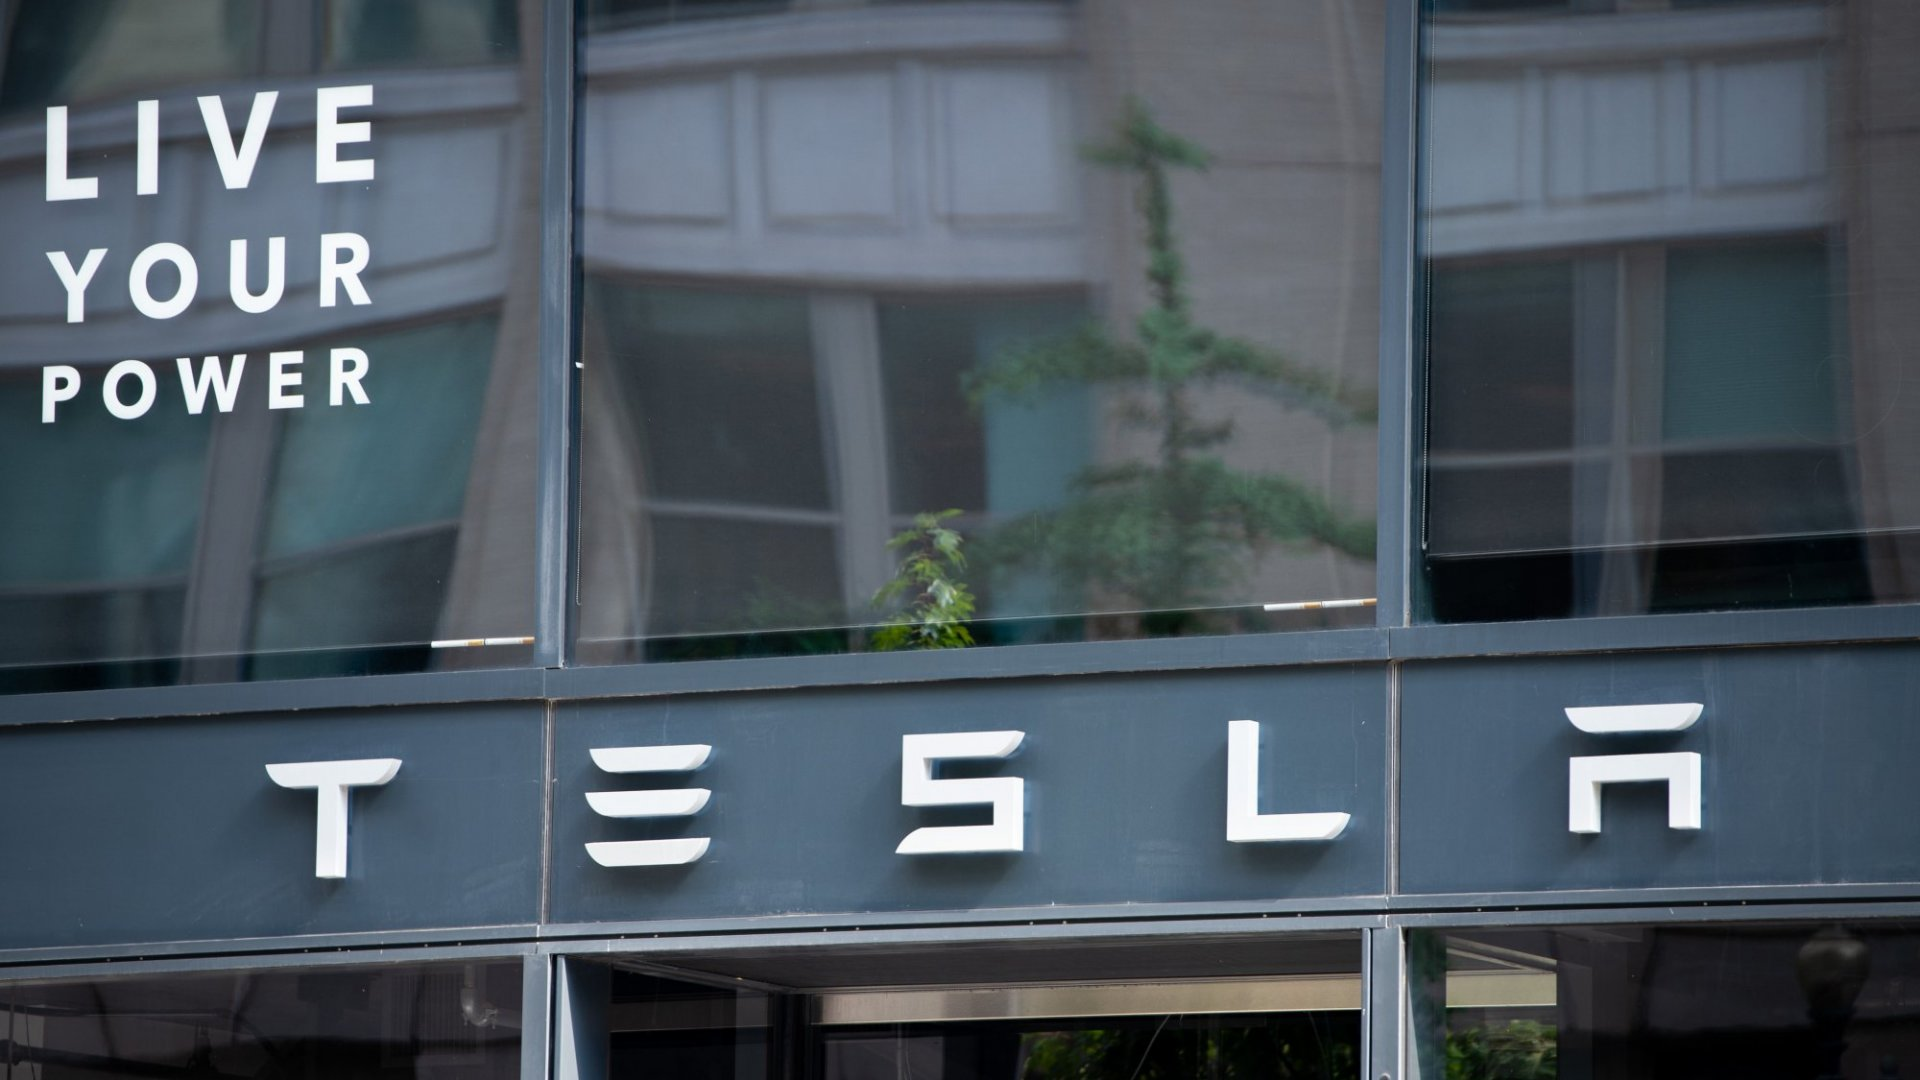 The SEC Is Investigating Elon Musk's Tweets. This Is a Big Problem for Tesla